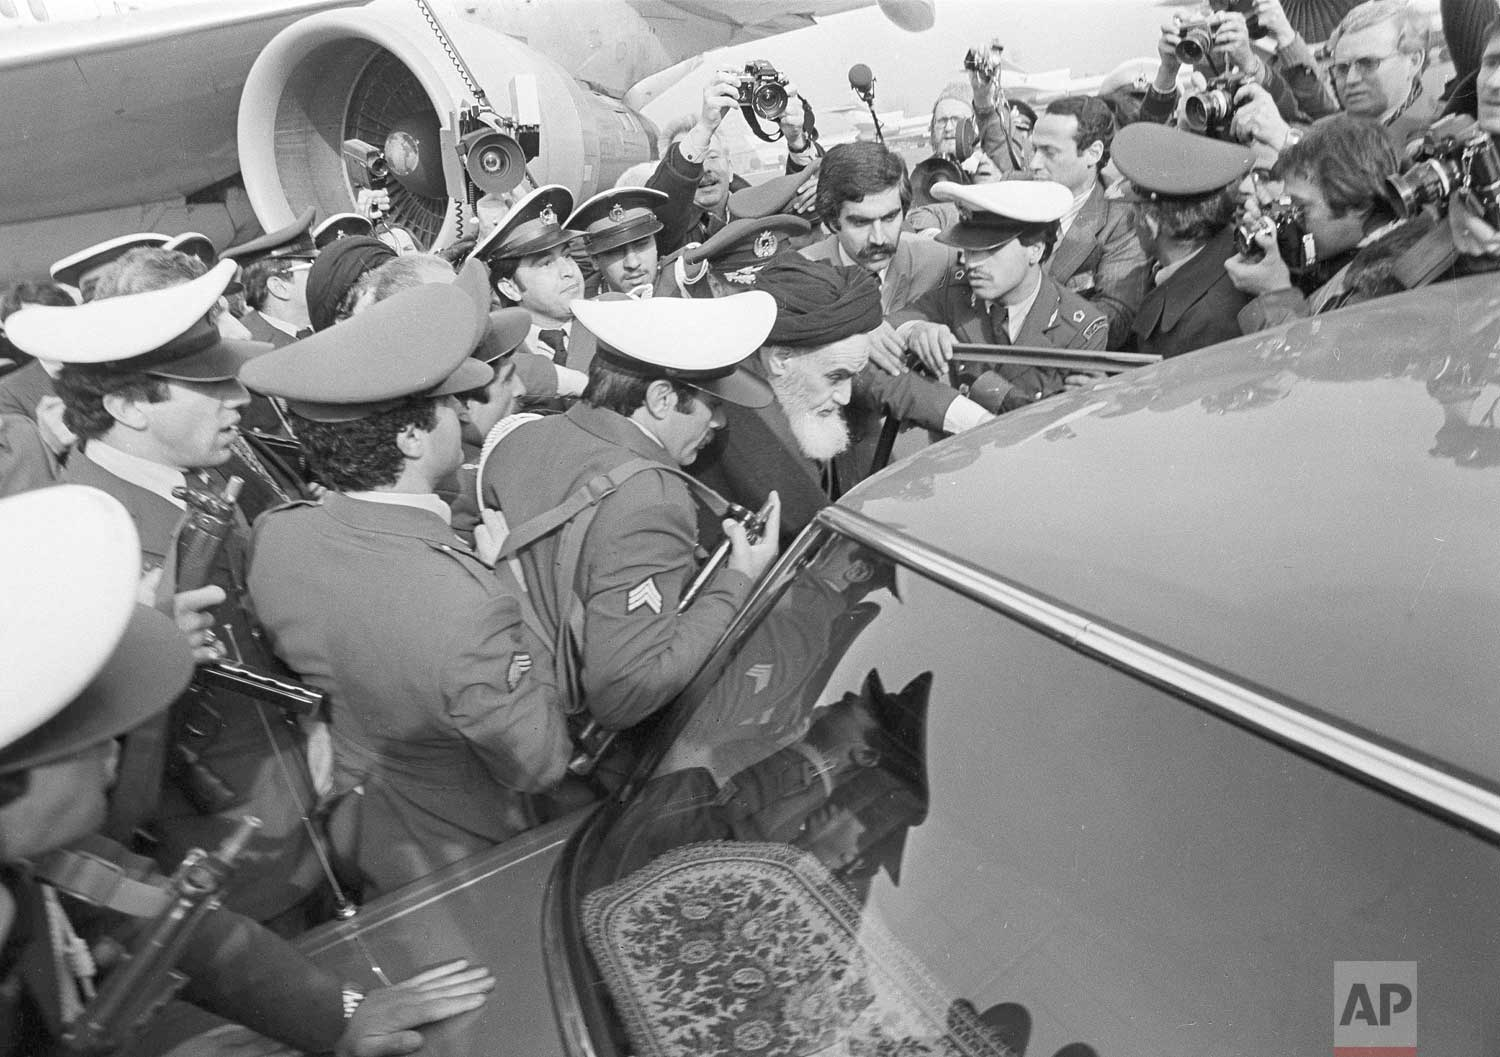 In this Feb. 1, 1979 photo, exiled Ayatollah Ruhollah Khomeini has a heavy escort as he enters car to leave the airport in Tehran, Iran. (AP Photo)